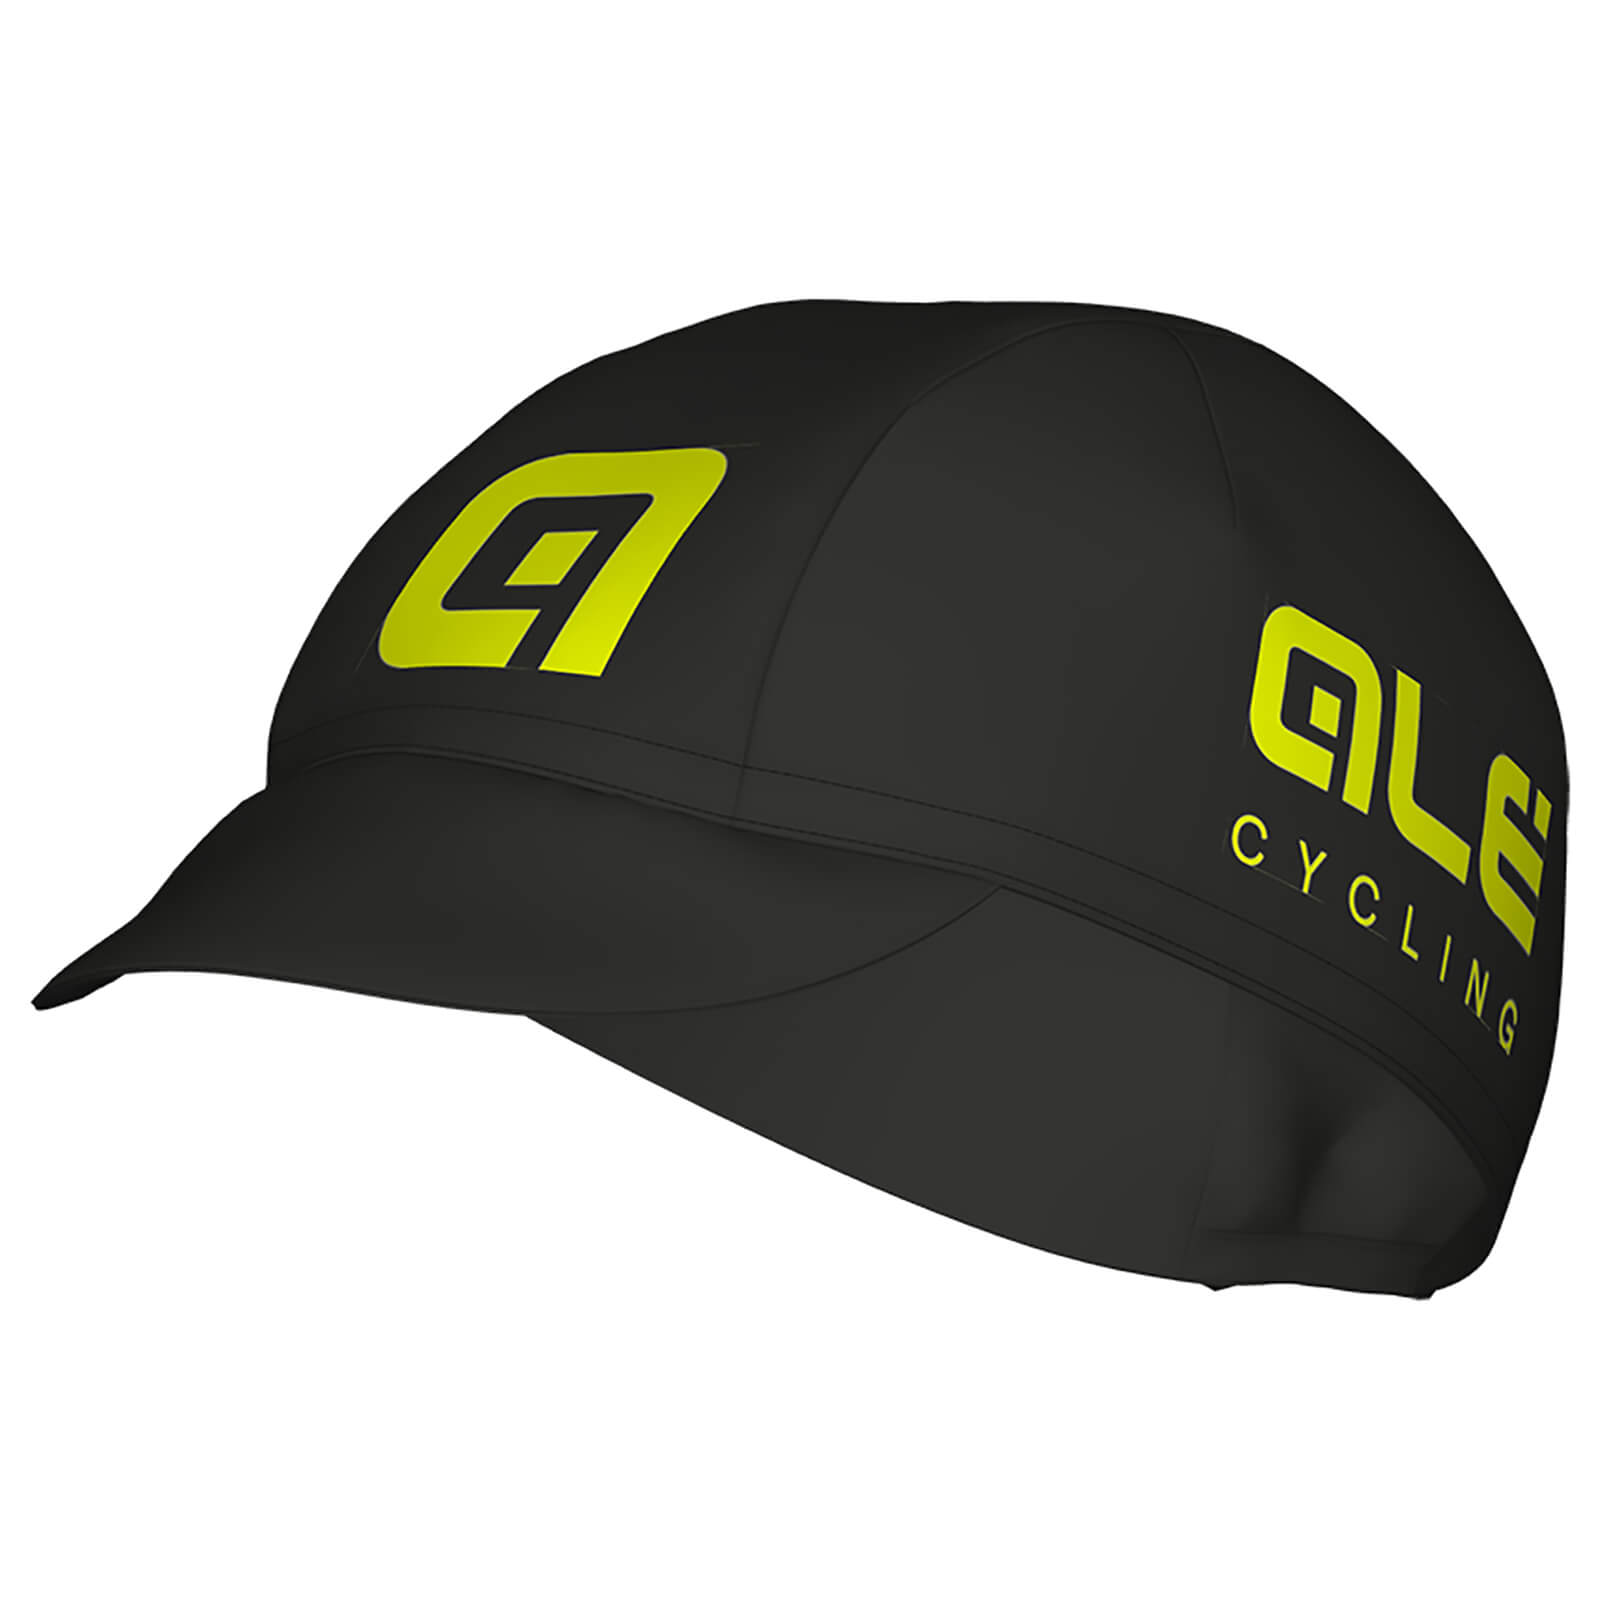 Alé Cotton Cap - Black/Yellow